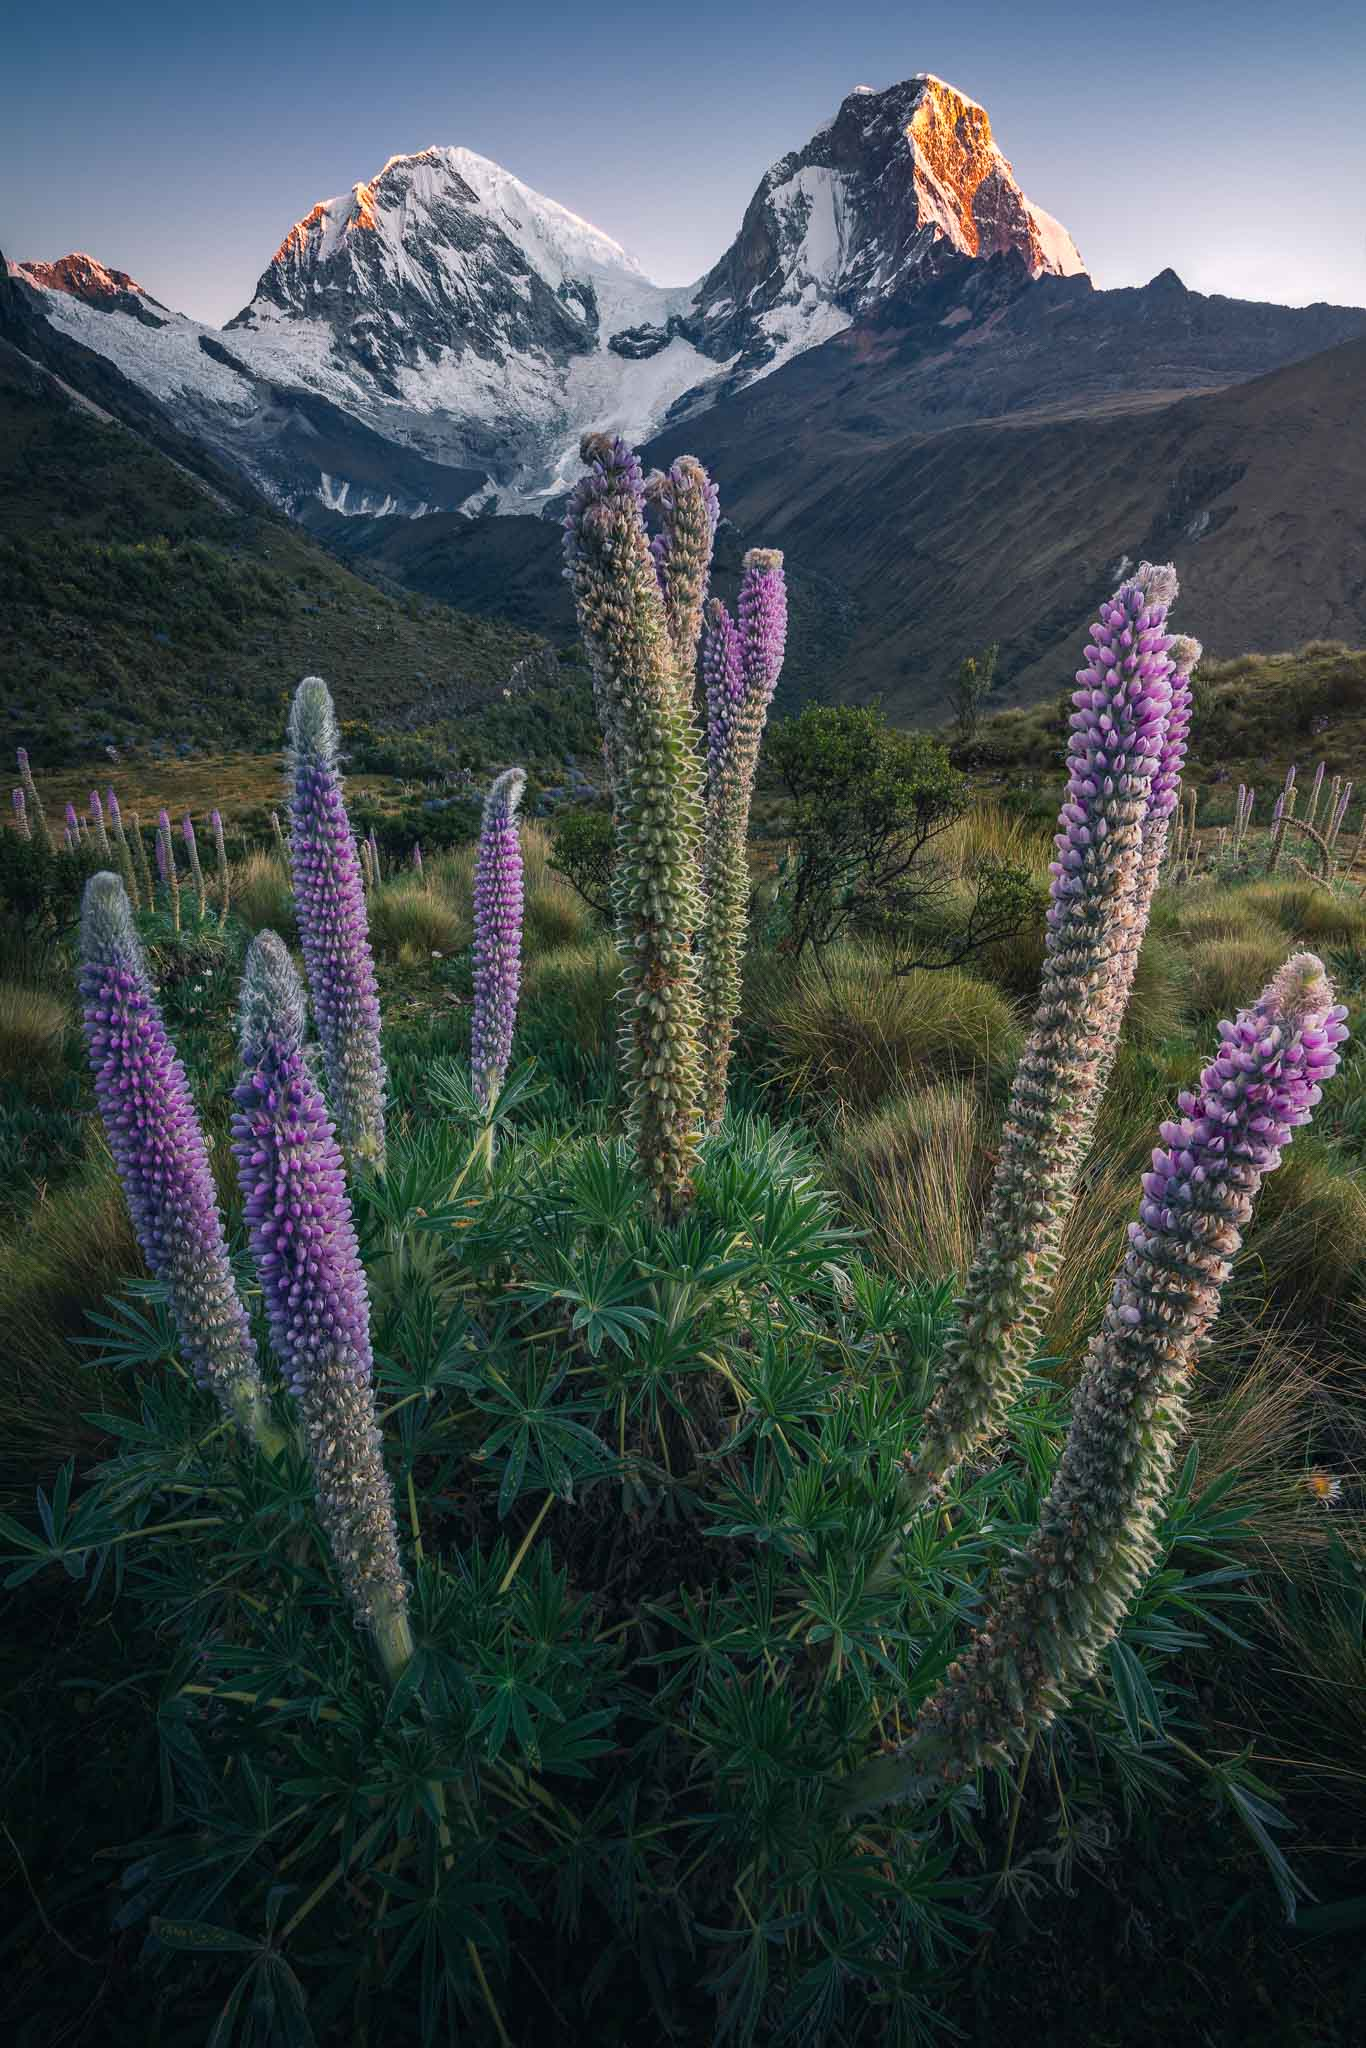 Garden of lupins during the Peru Photo Tour